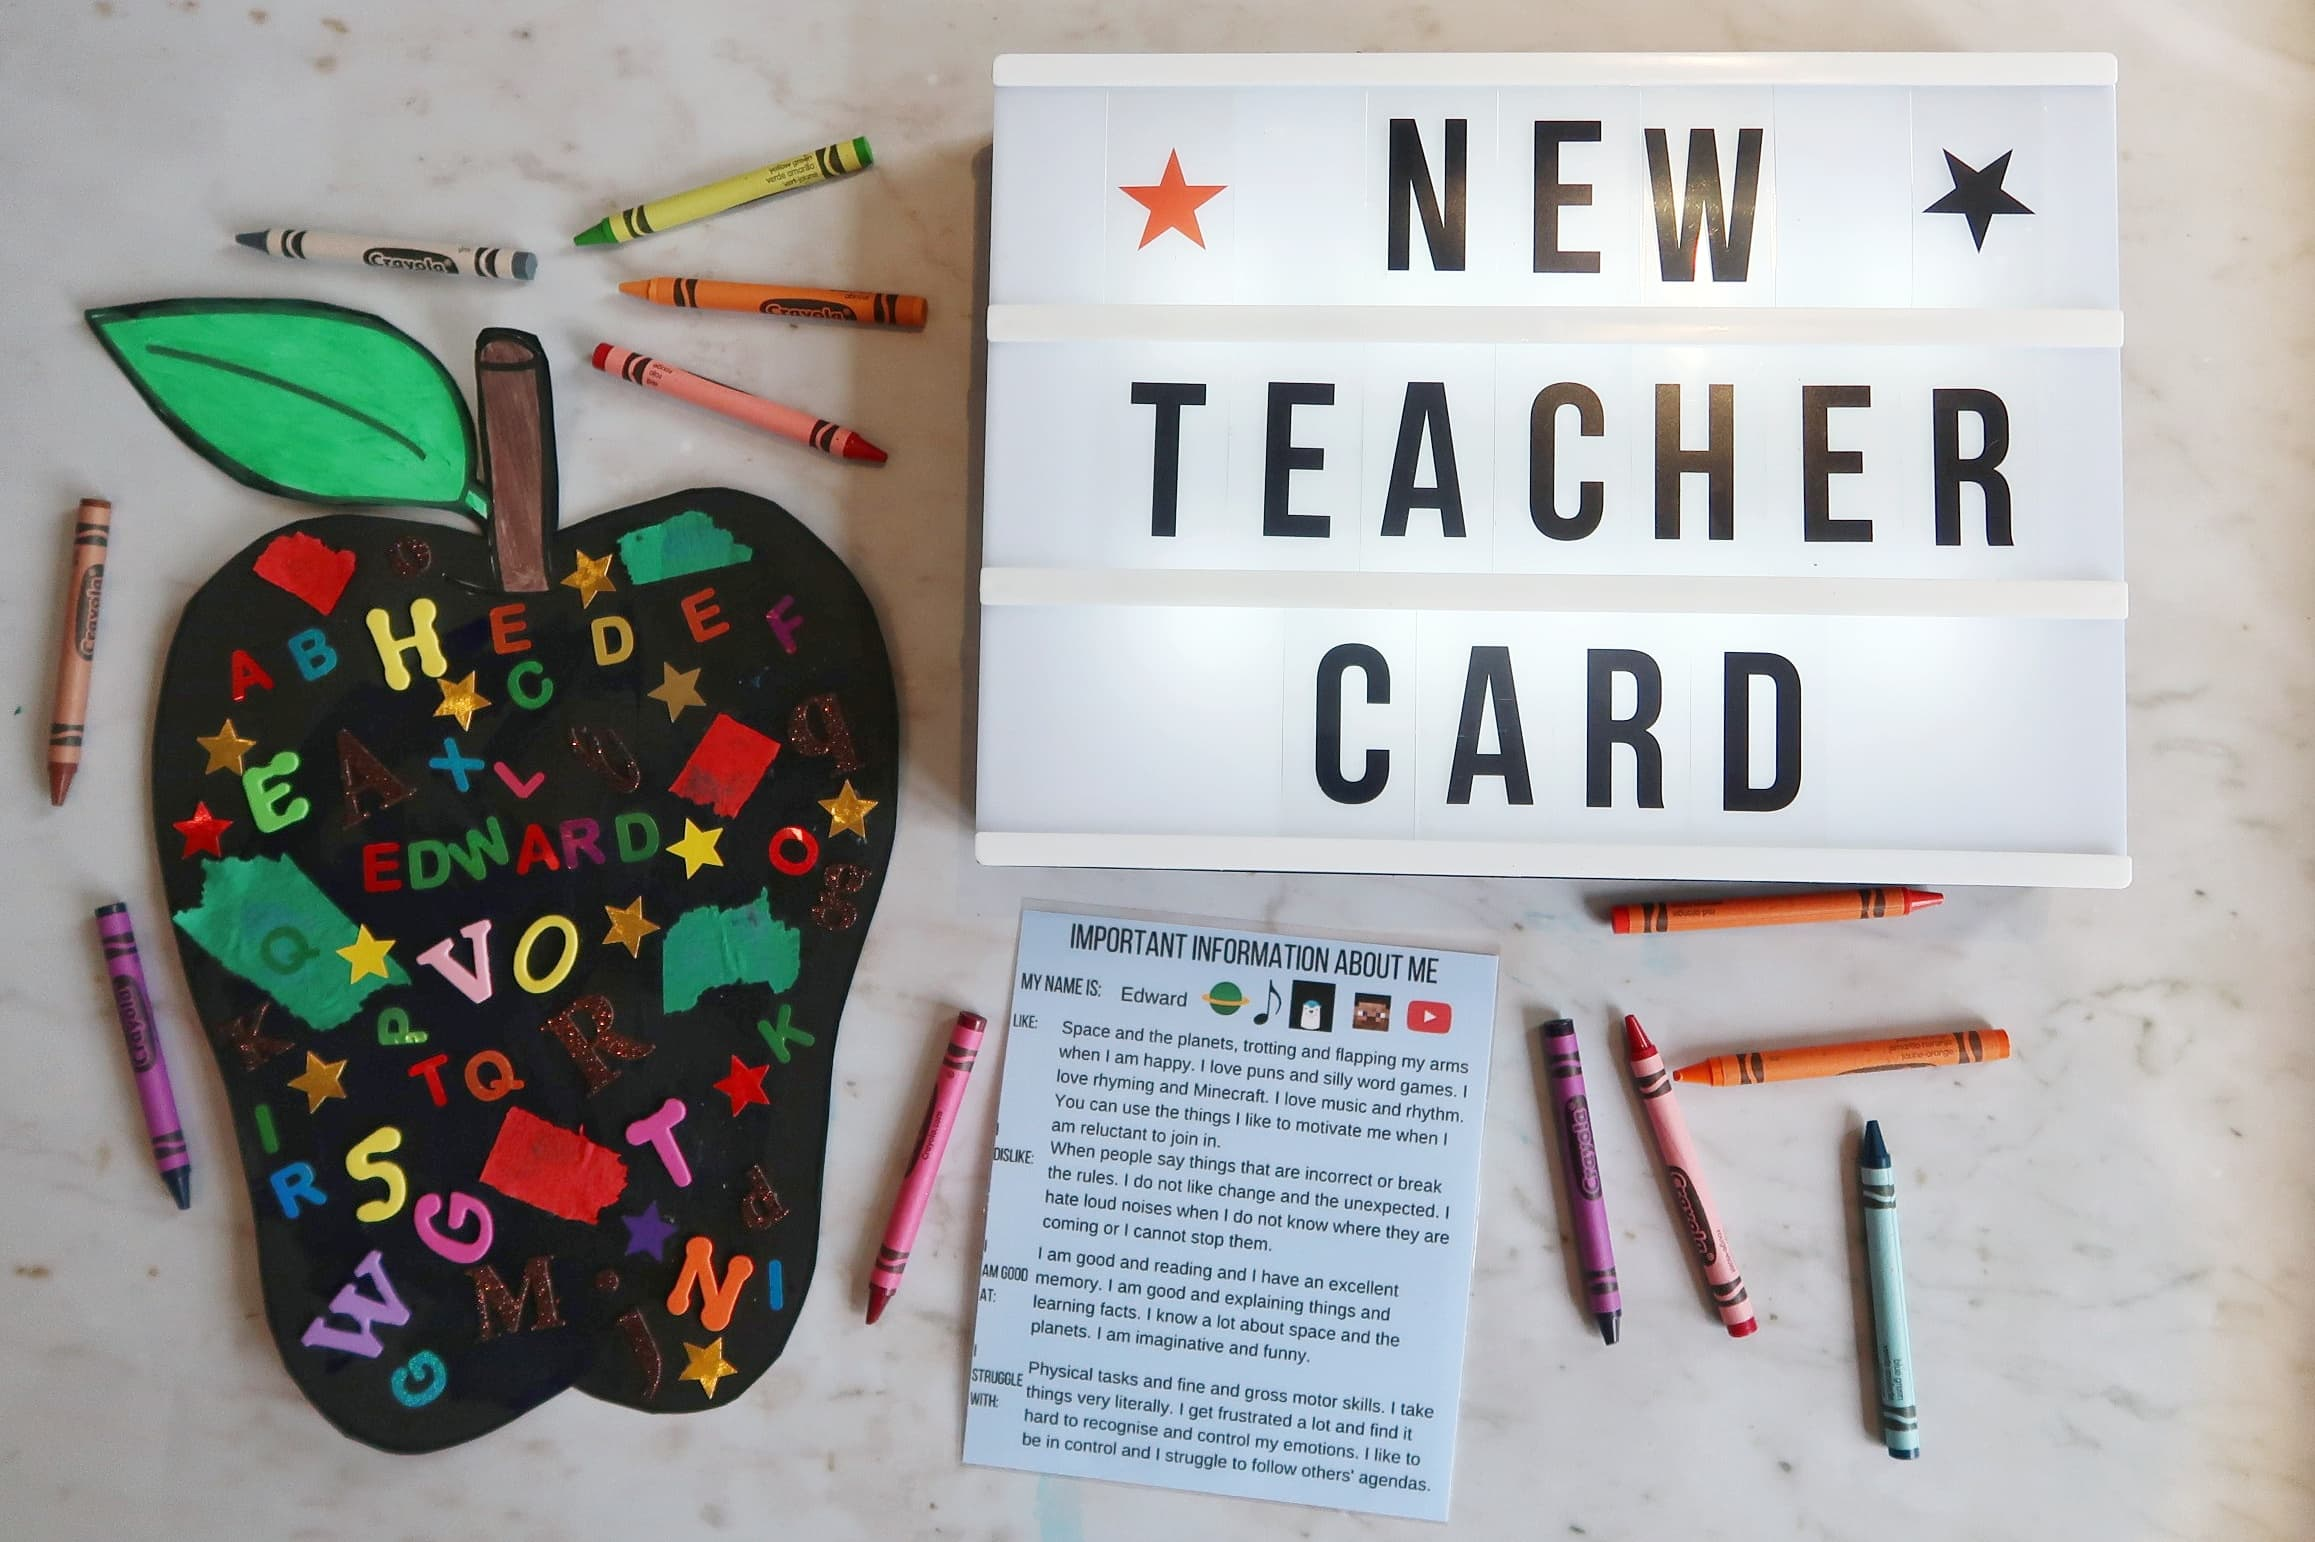 Back to school craft - new teacher card. Blackboard apple next to lightbox spelling 'New Teacher Card'.